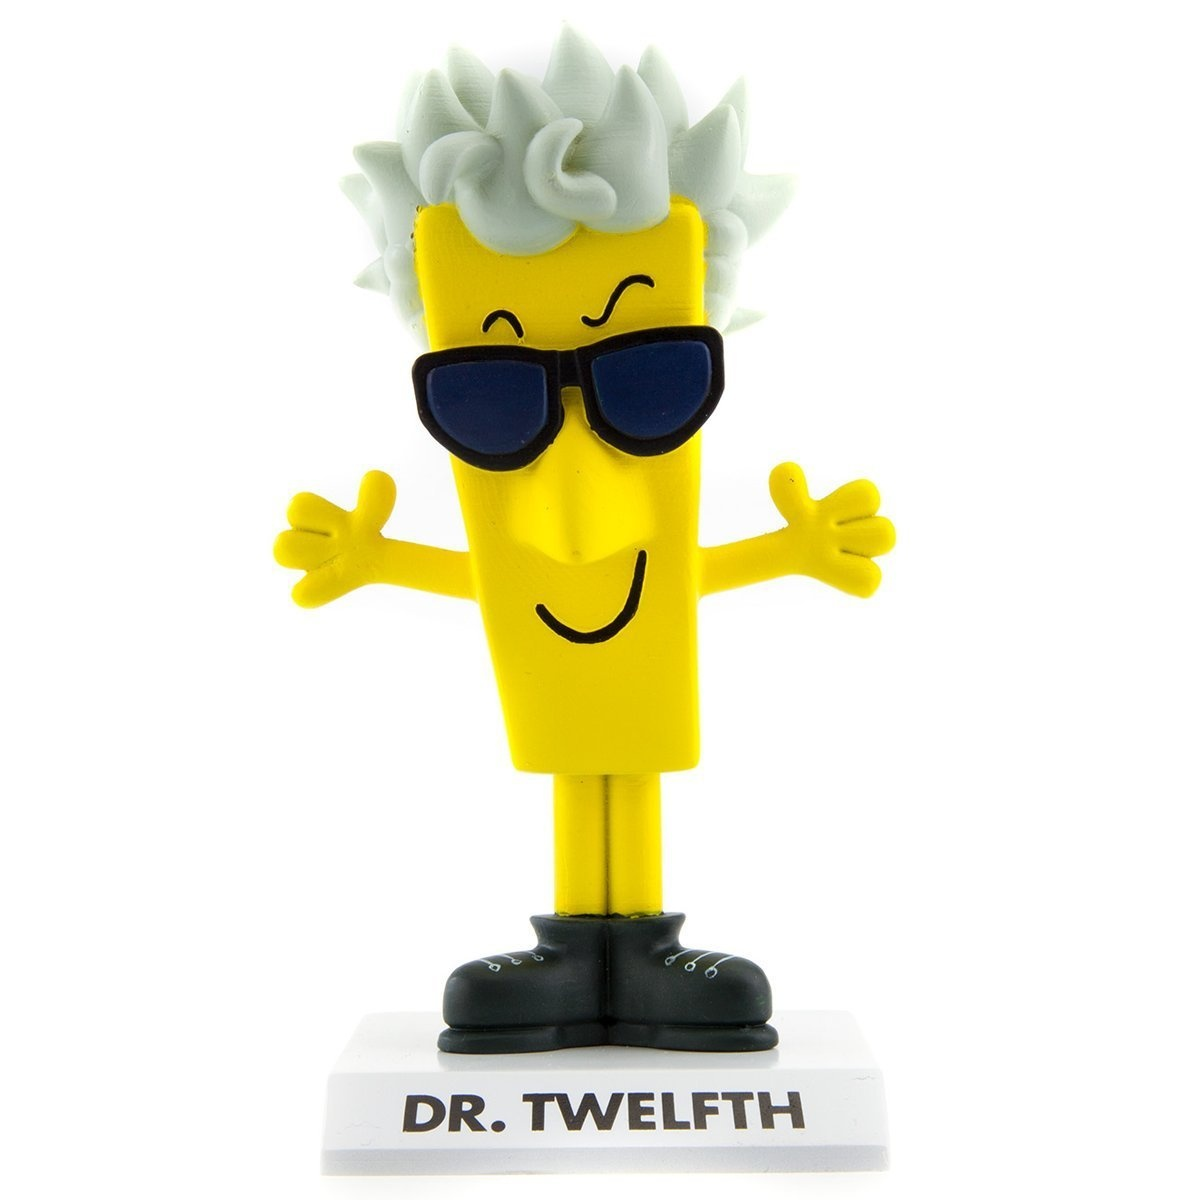 SET OF 4 TWELFTH ELEVENTH FIRST FOURTH DOCTOR WHO MR MEN FIGURINES